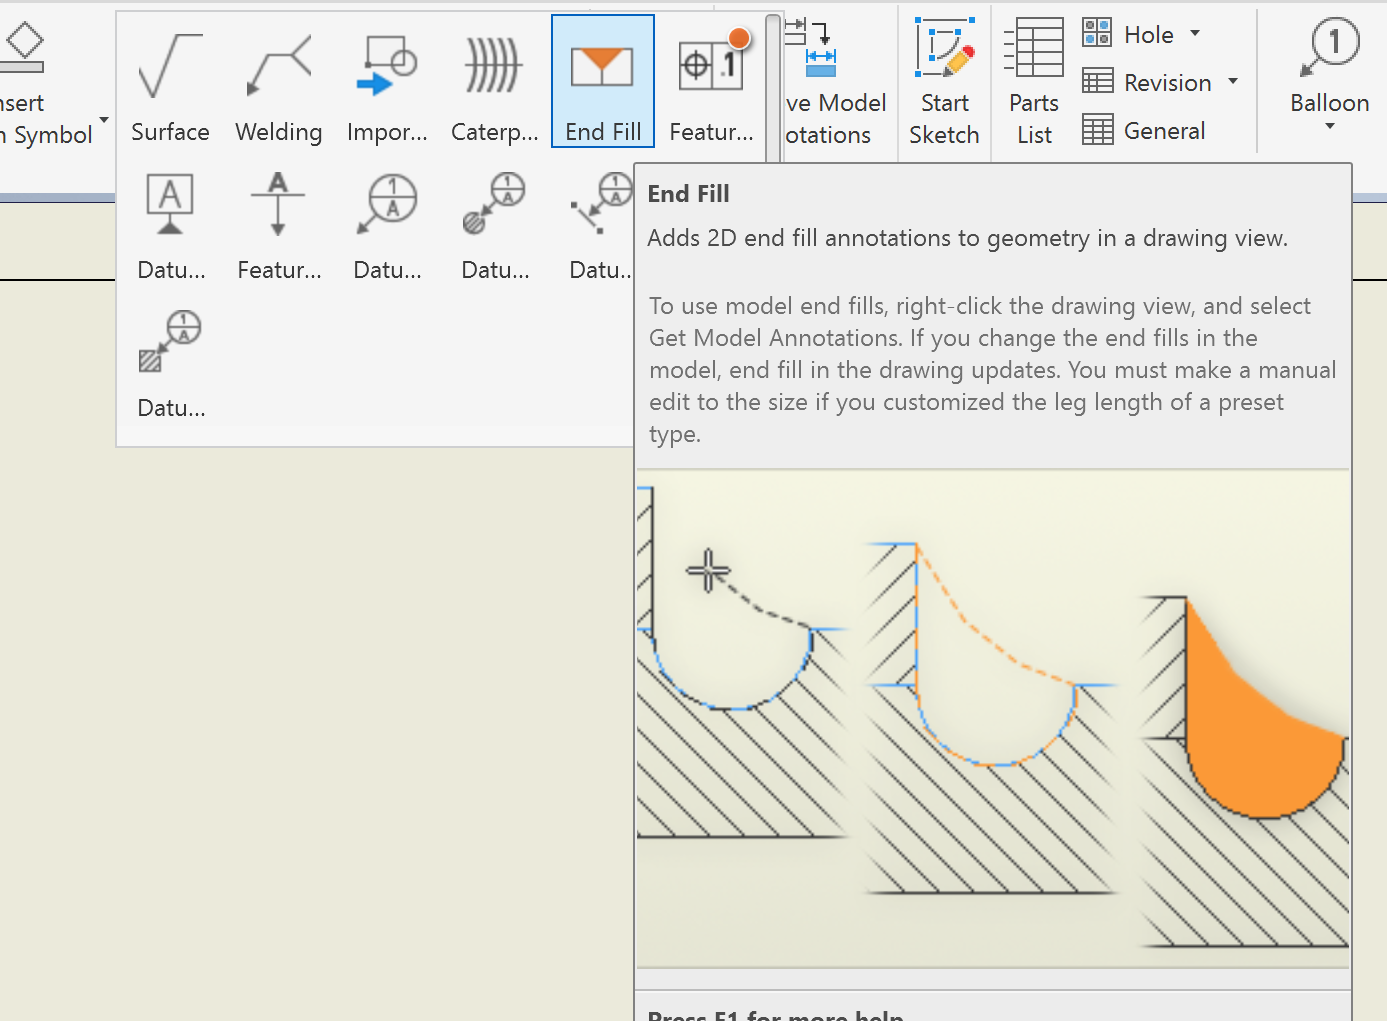 Weld bead colors in Drawing - Autodesk Community